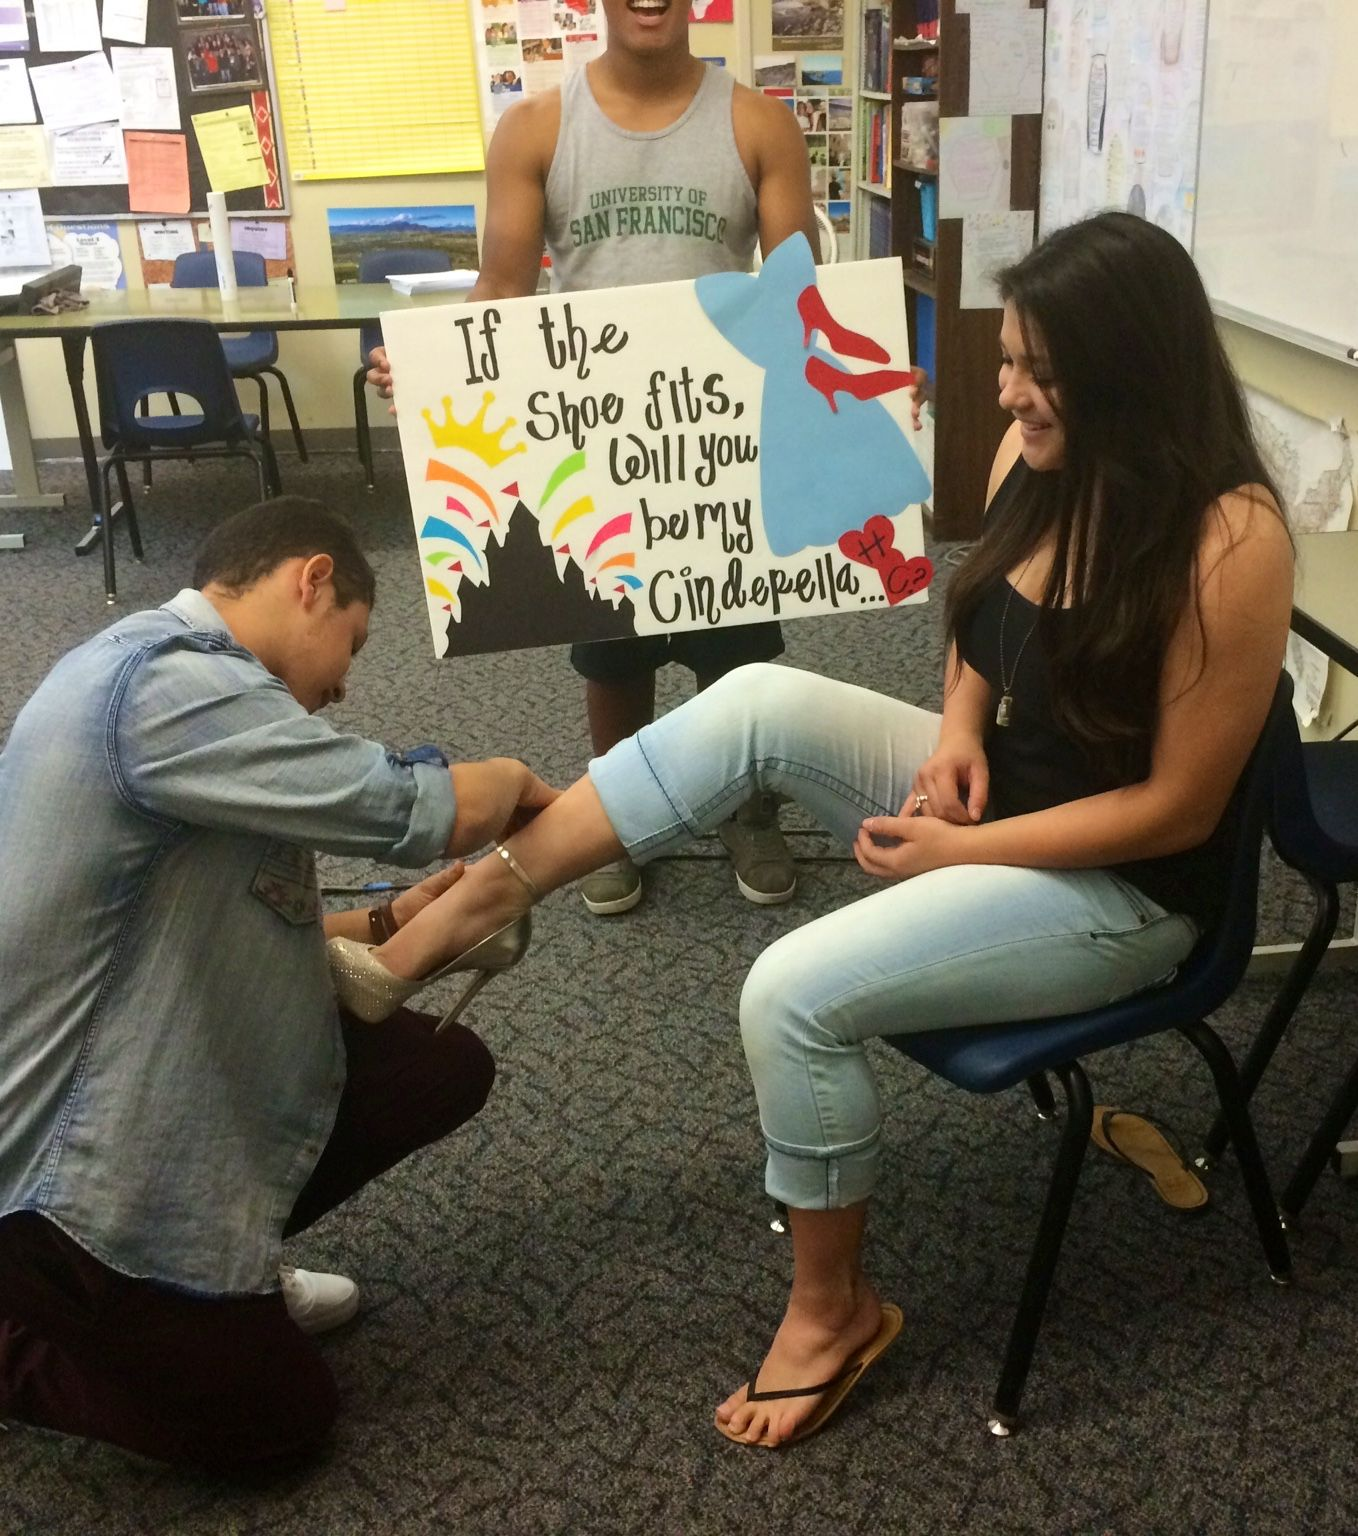 Cute Homecoming Proposals Google Search Cute Proposals